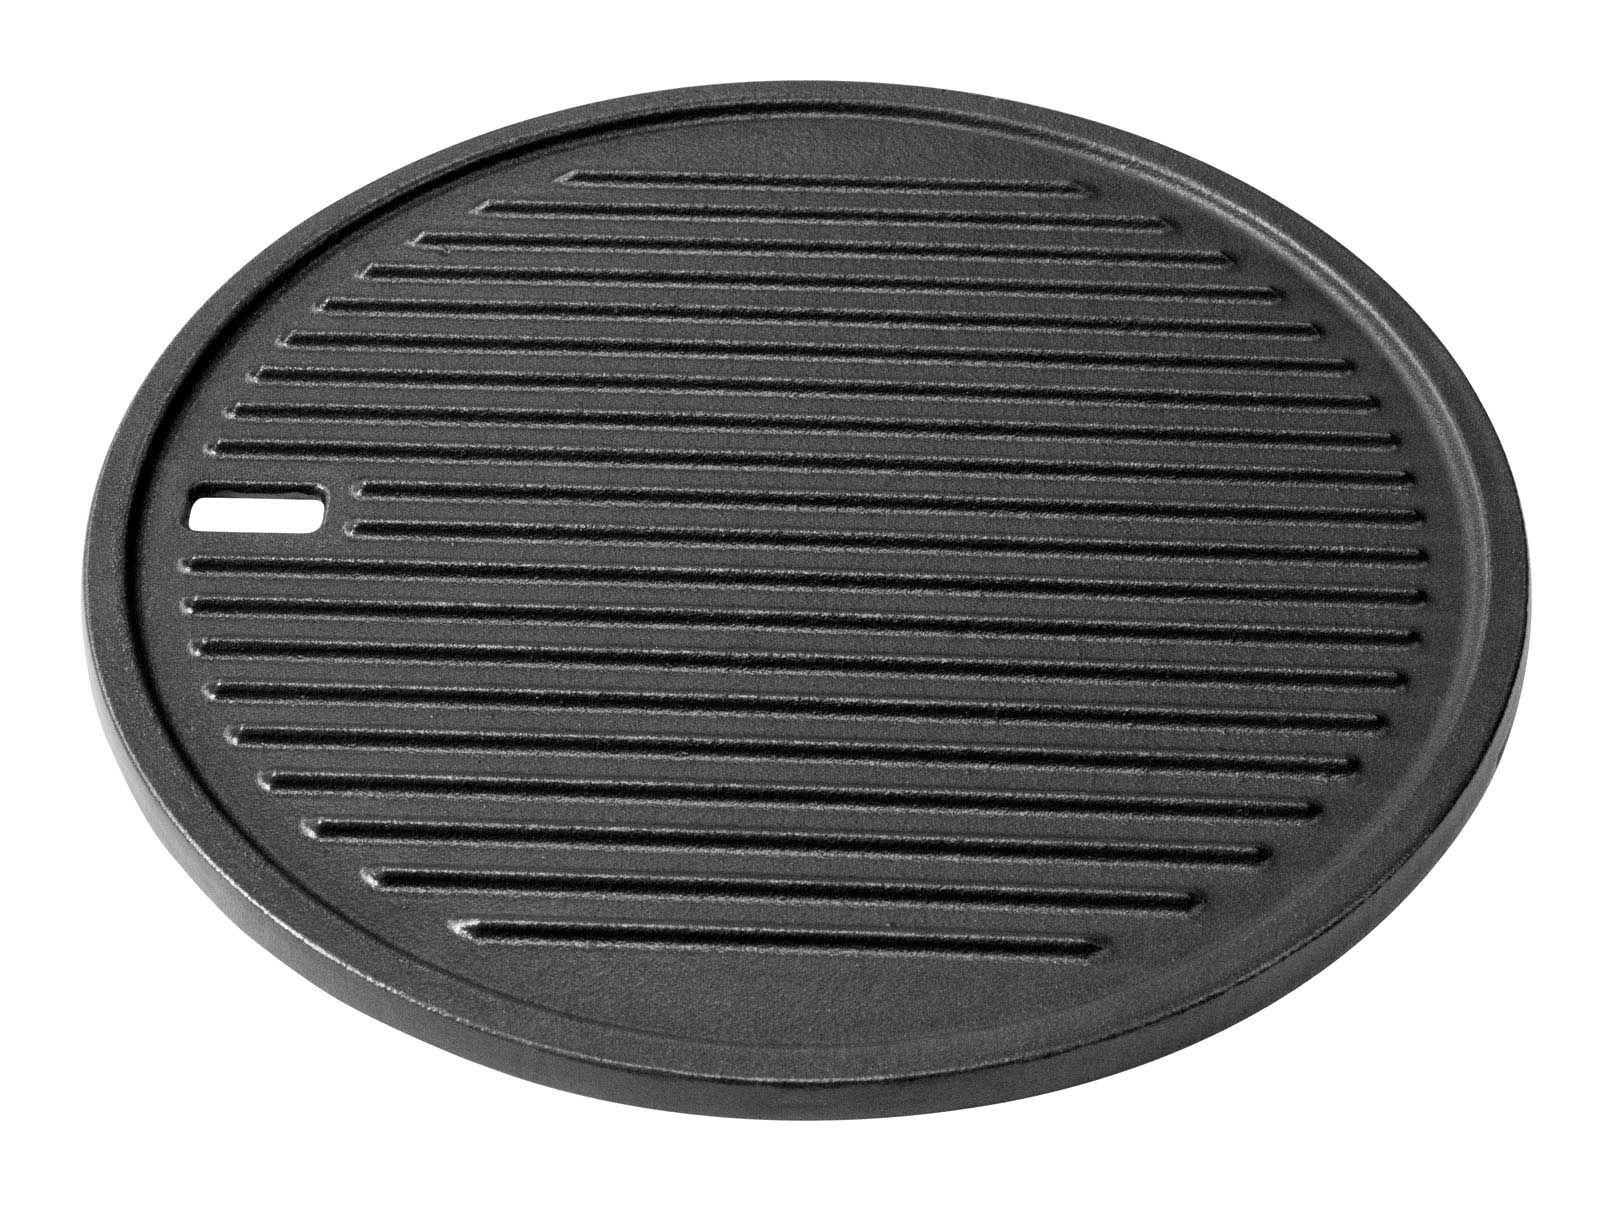 Landmann BBQ Modulus Double Sided Griddle Plate